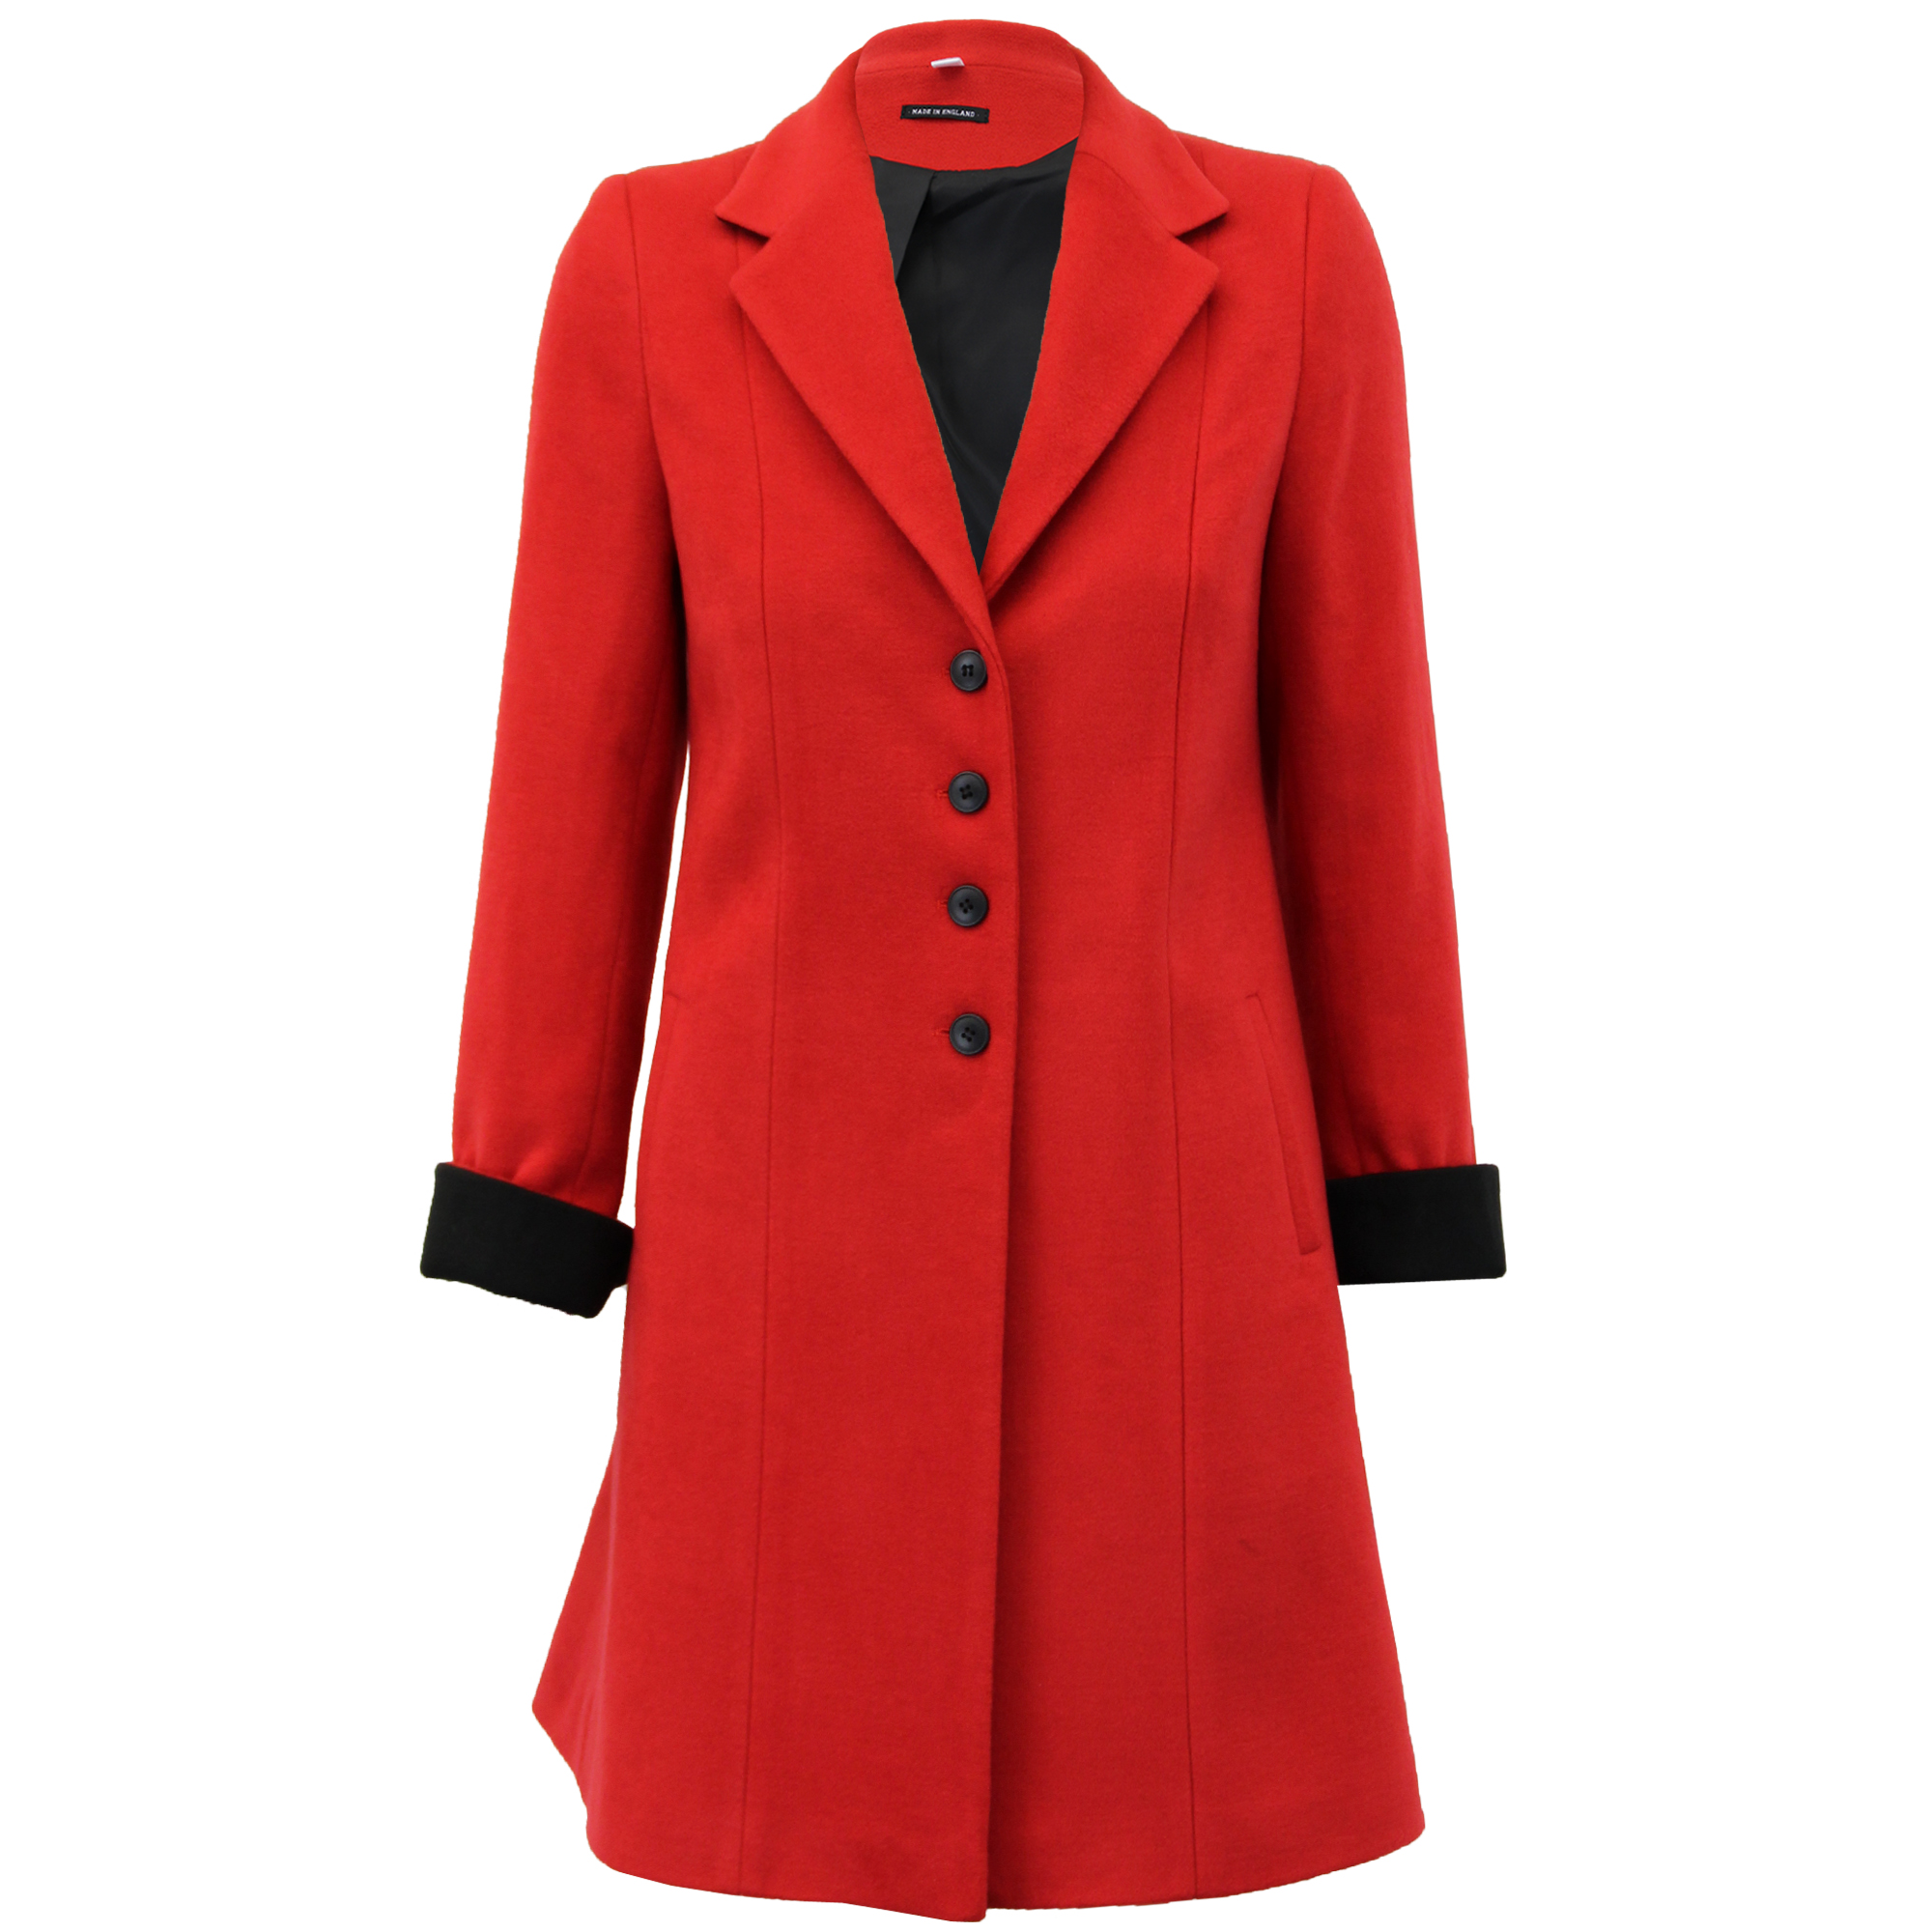 Womens Fashion Clothing For Over